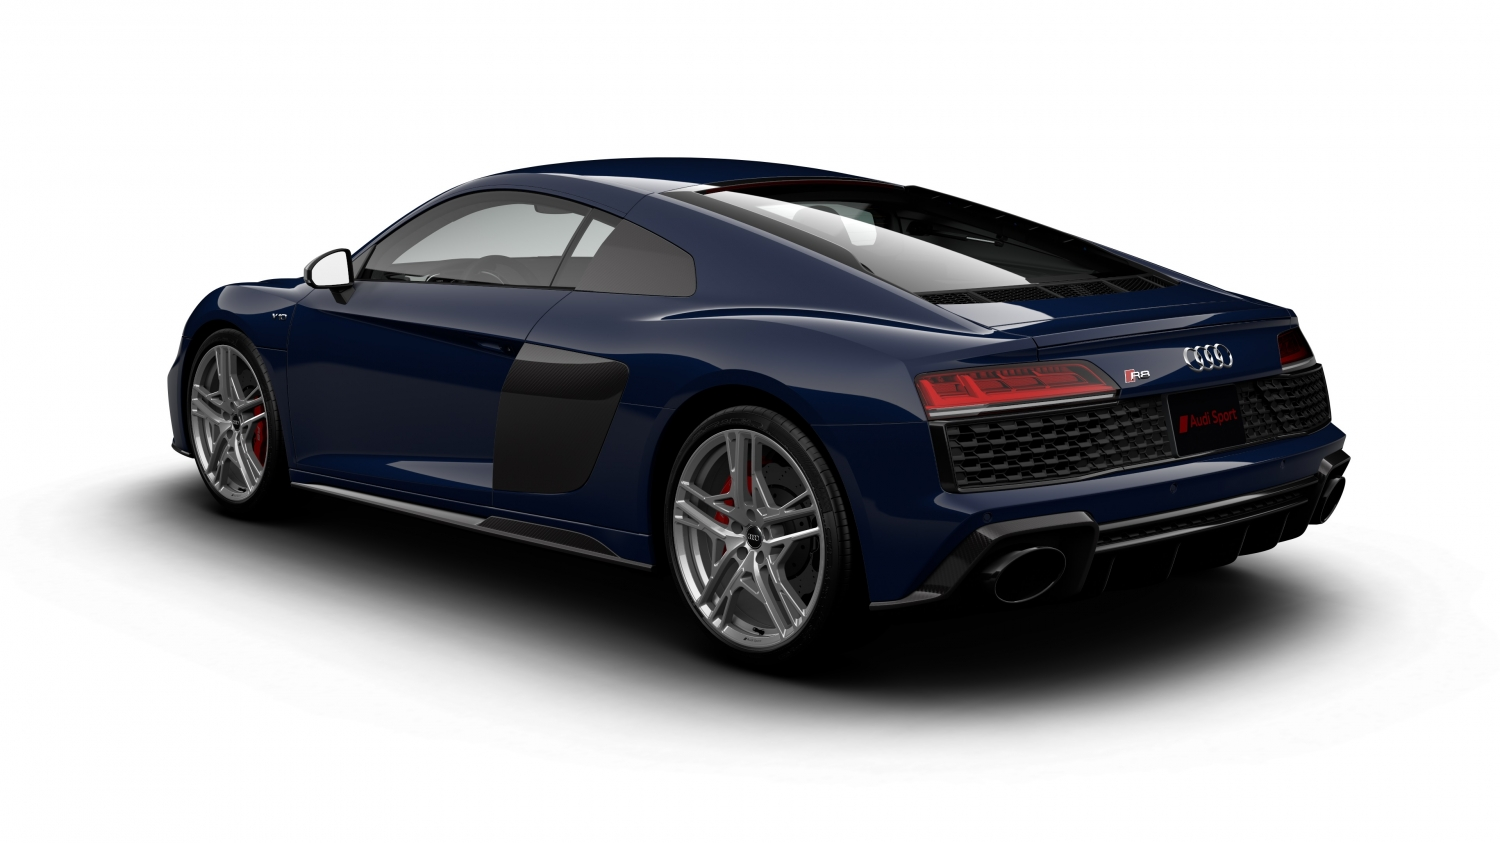 Small-2020-Audi-R8-V10-quattro---Mugello-Blue-7465